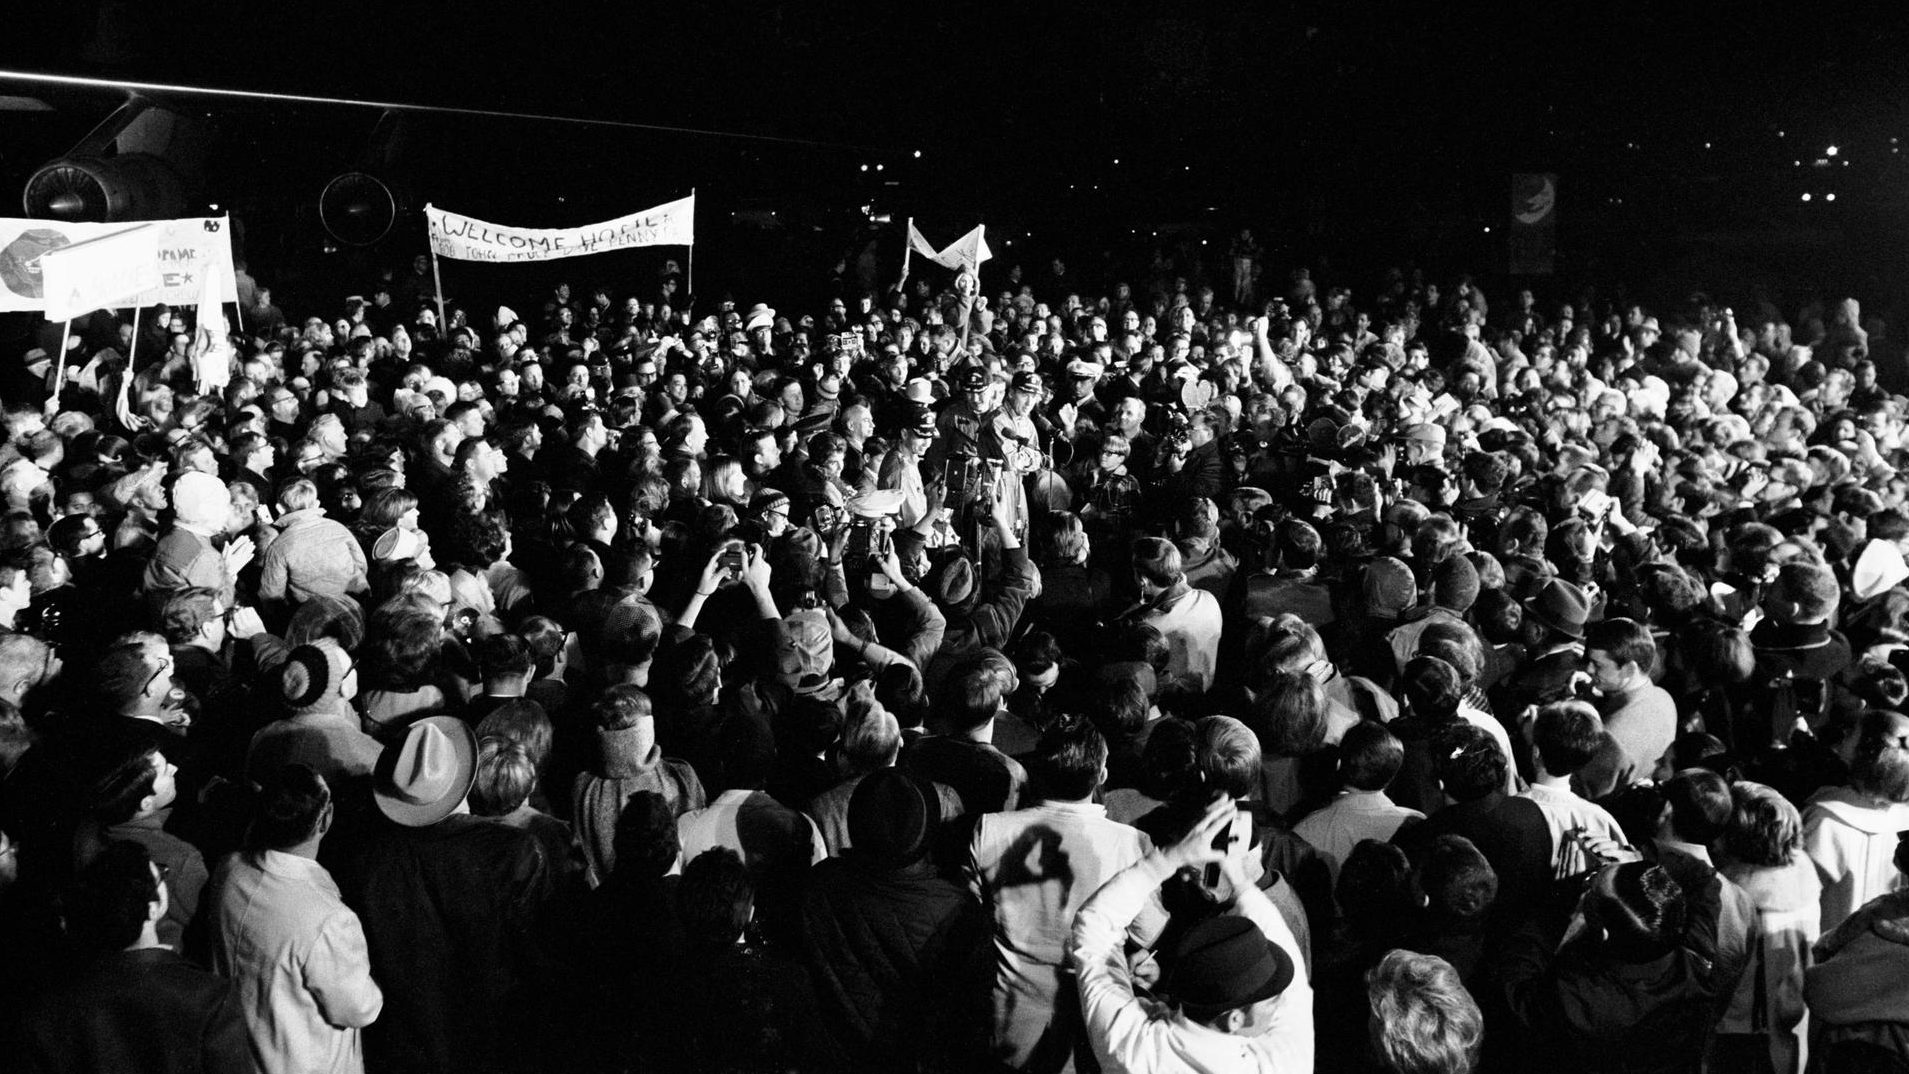 (29 Dec. 1968) --- Although it was past 2 a.m., a crew of more than 2,000 people were on hand at Ellington Air Force Base to welcome the members of the Apollo 8 crew back home. Astronauts Frank Borman, James A. Lovell Jr., and William A. Anders had just flown to Houston from the pacific recovery area by way of Hawaii. The three crewmen of the historic Apollo 8 lunar orbit mission are standing at the microphones in center of picture.